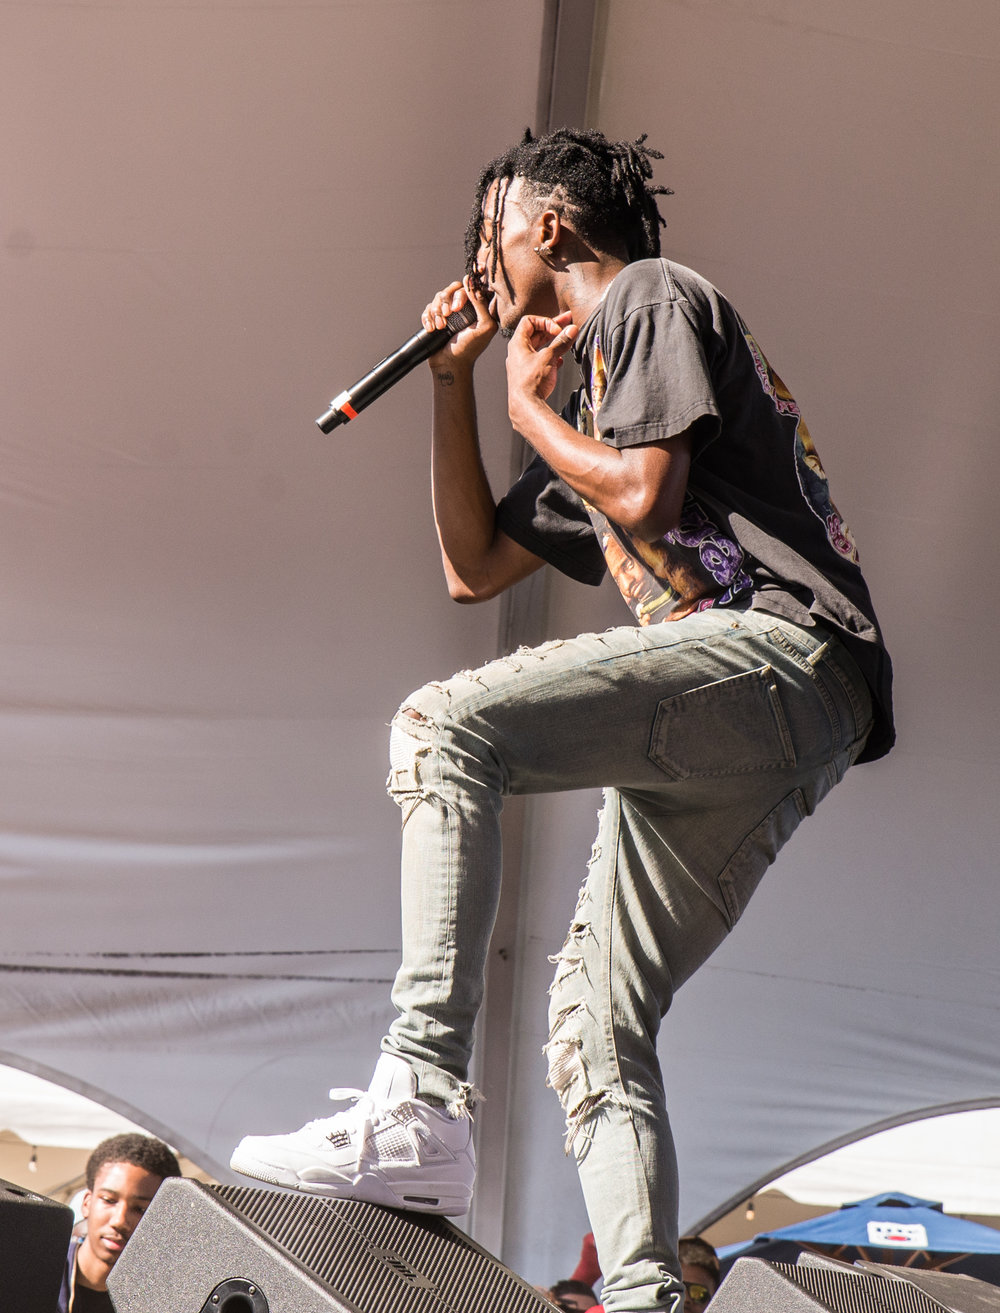 Playboi Carti - Unfortunately for him the only thing stopping all the girls was a metal barricade and two anxious looking security guards. The obstacles didn't stop the crowd from belting out song after song. He hyped up the crowd enough to start a mosh pit!